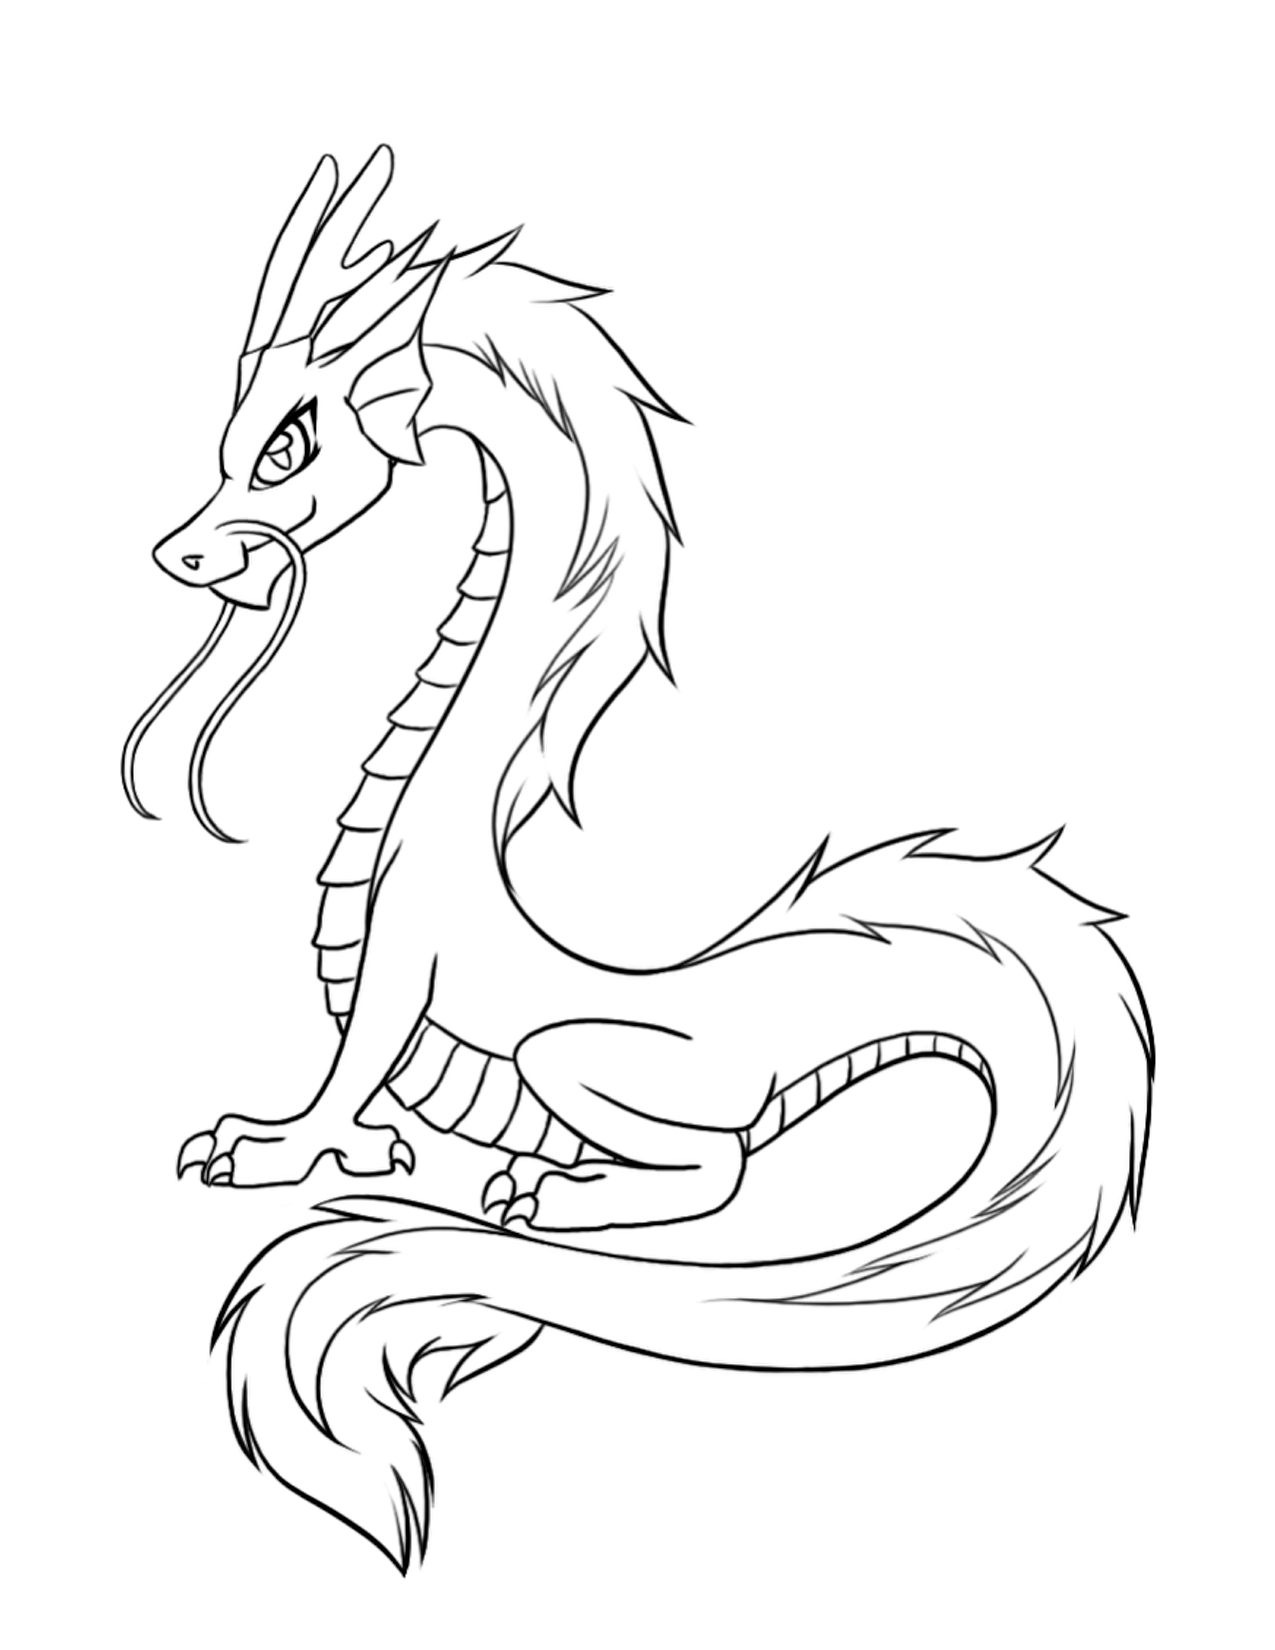 coloring pages dragon dragon coloring pages the sun flower pages coloring dragon pages